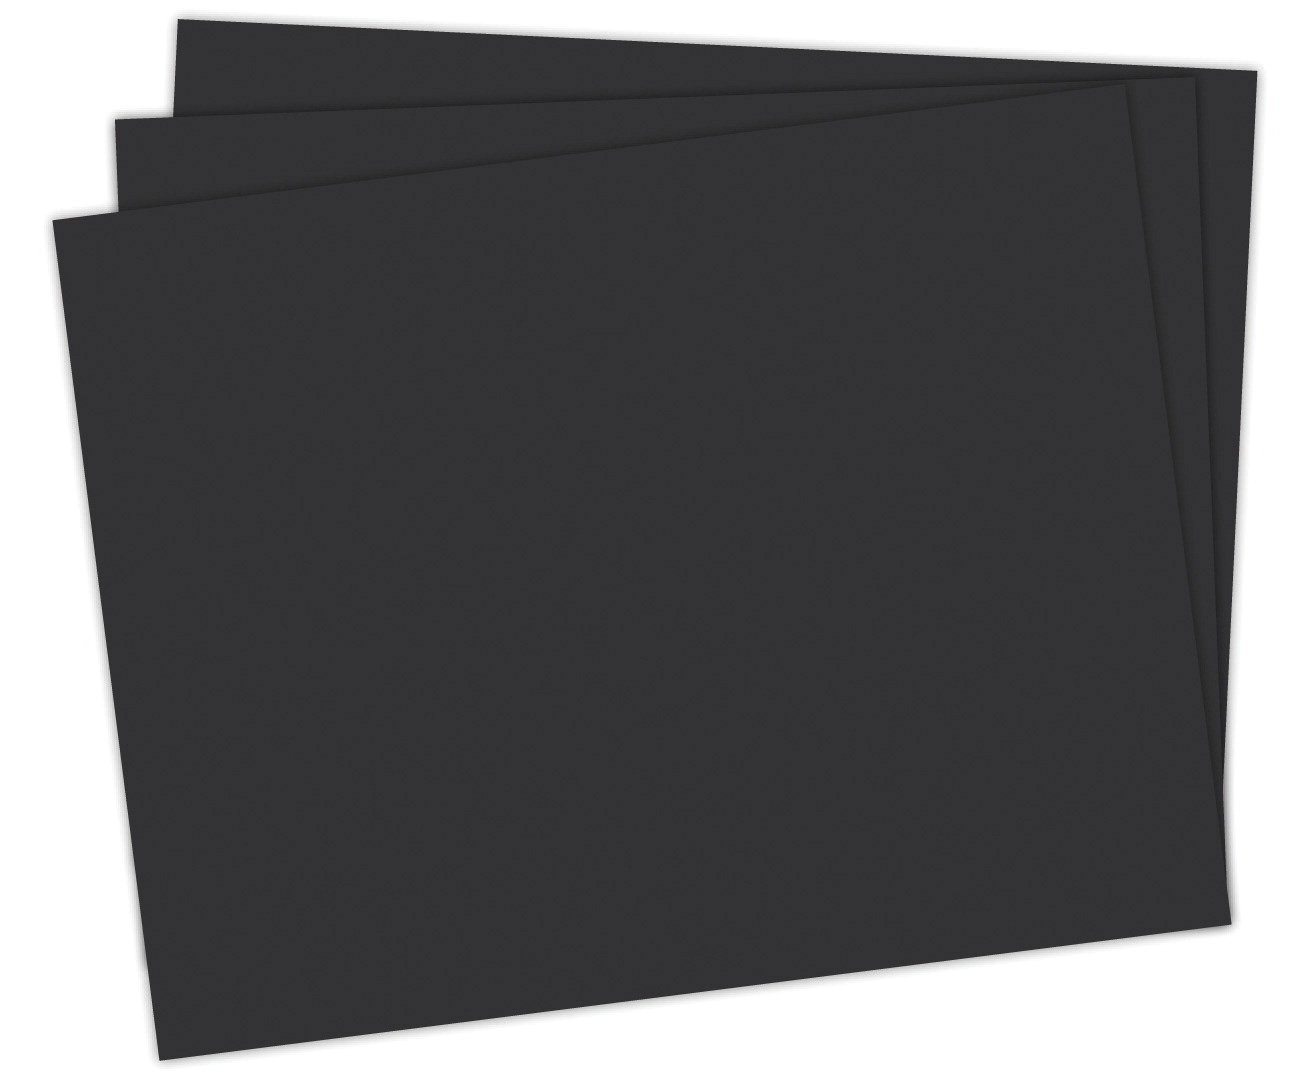 School Smart 1485728 Railroad Board, 4-ply Thickness, 22'' x 28'', Black (Pack of 25)